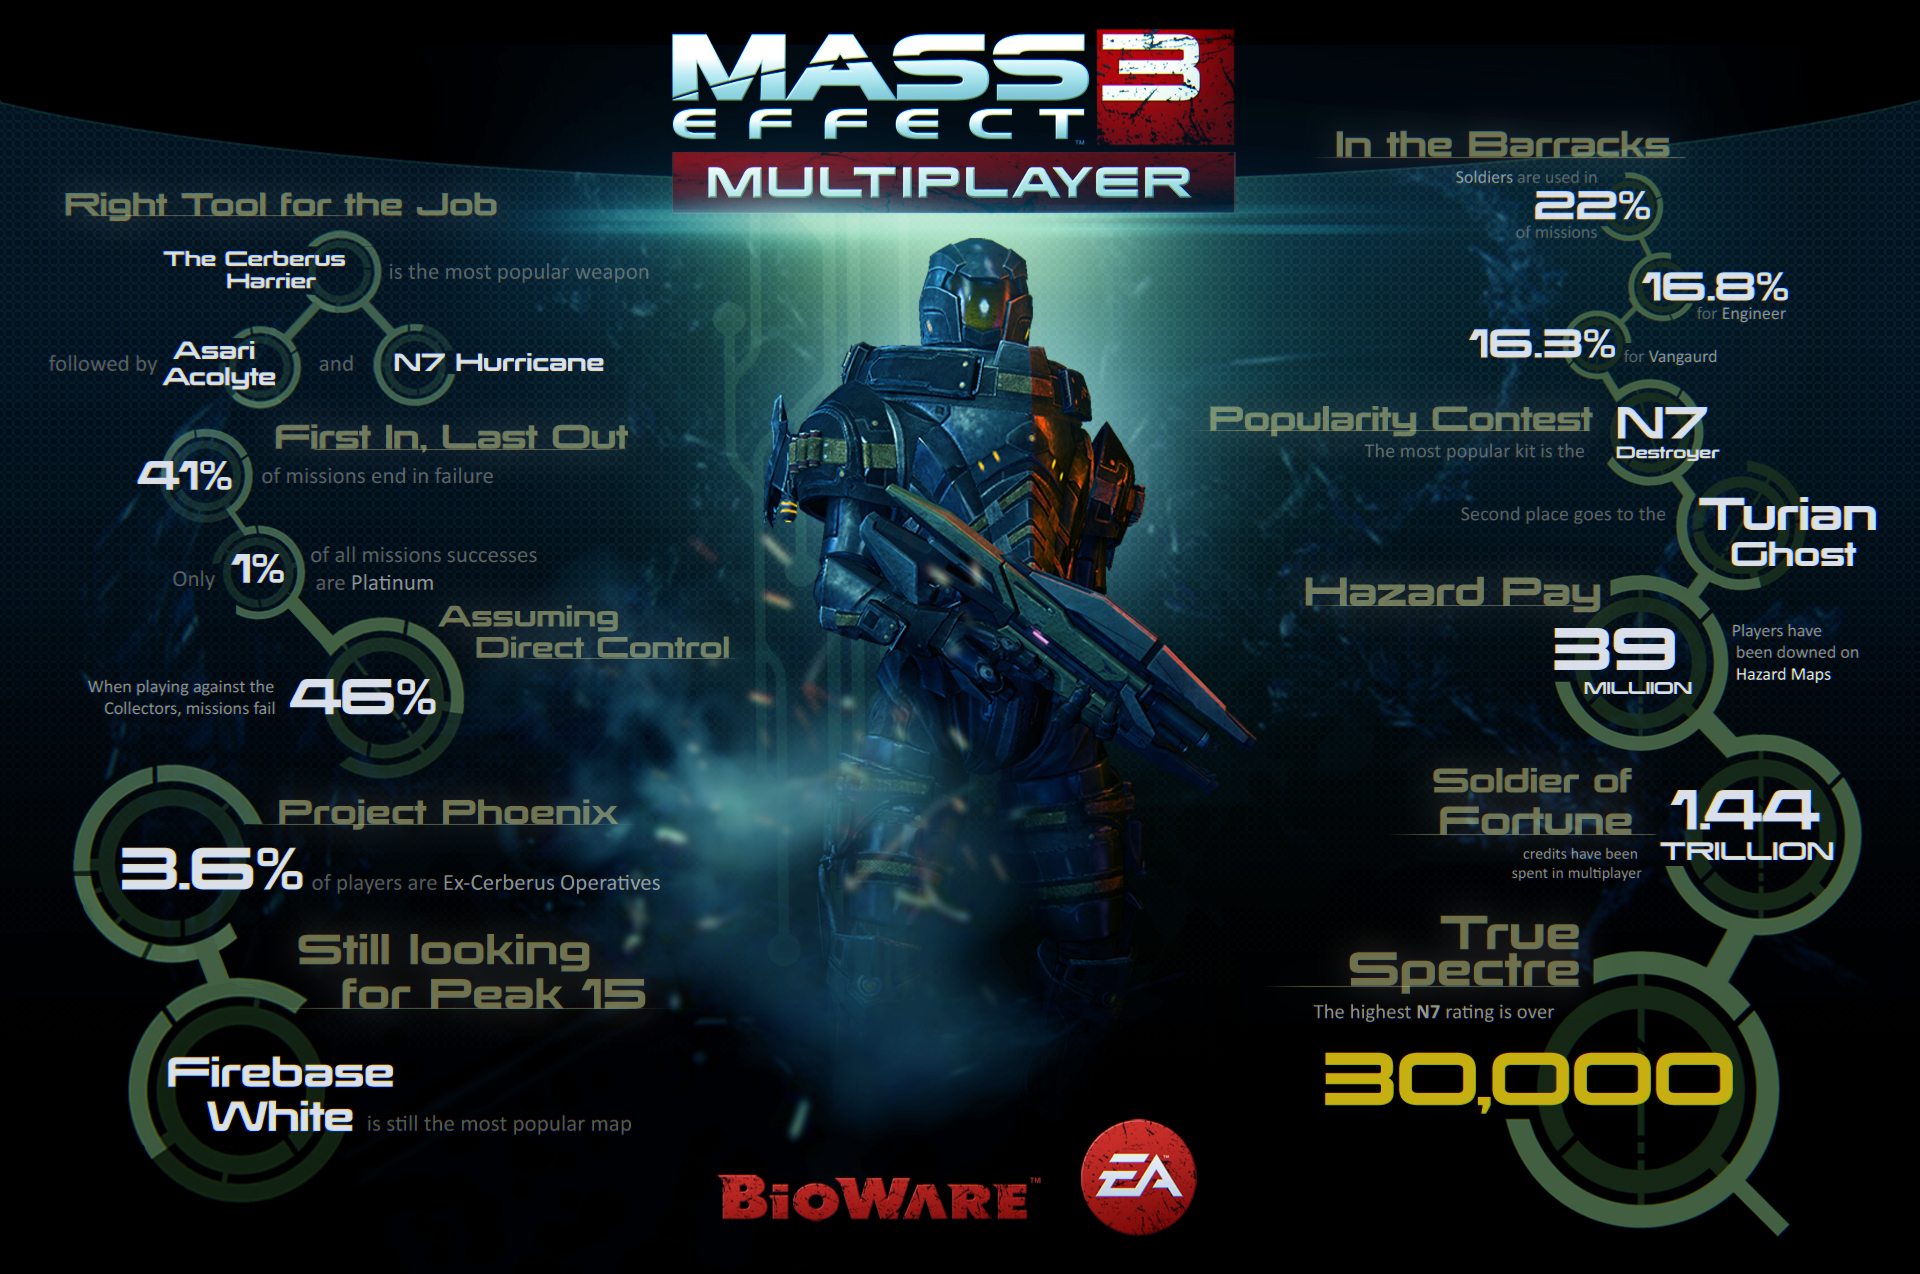 Mass Effect Star Map.Mass Effect 3 Multiplayer Turns One Bioware Celebrate With Stat